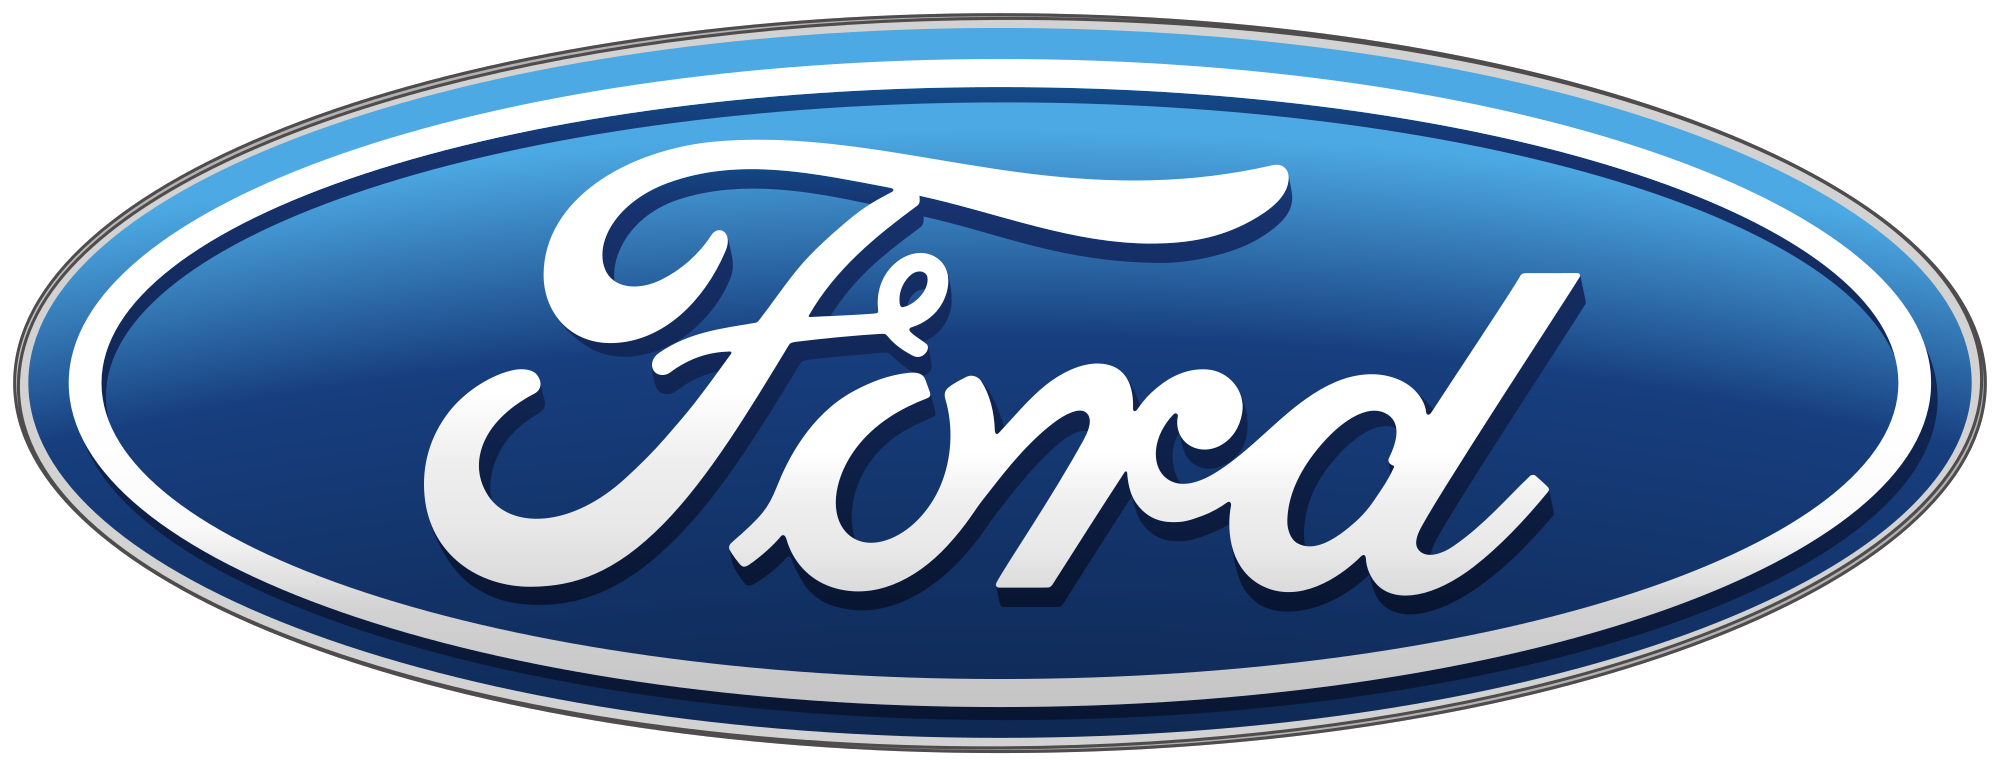 Automotive Pre Employment Testing Talent Assessment For Ford